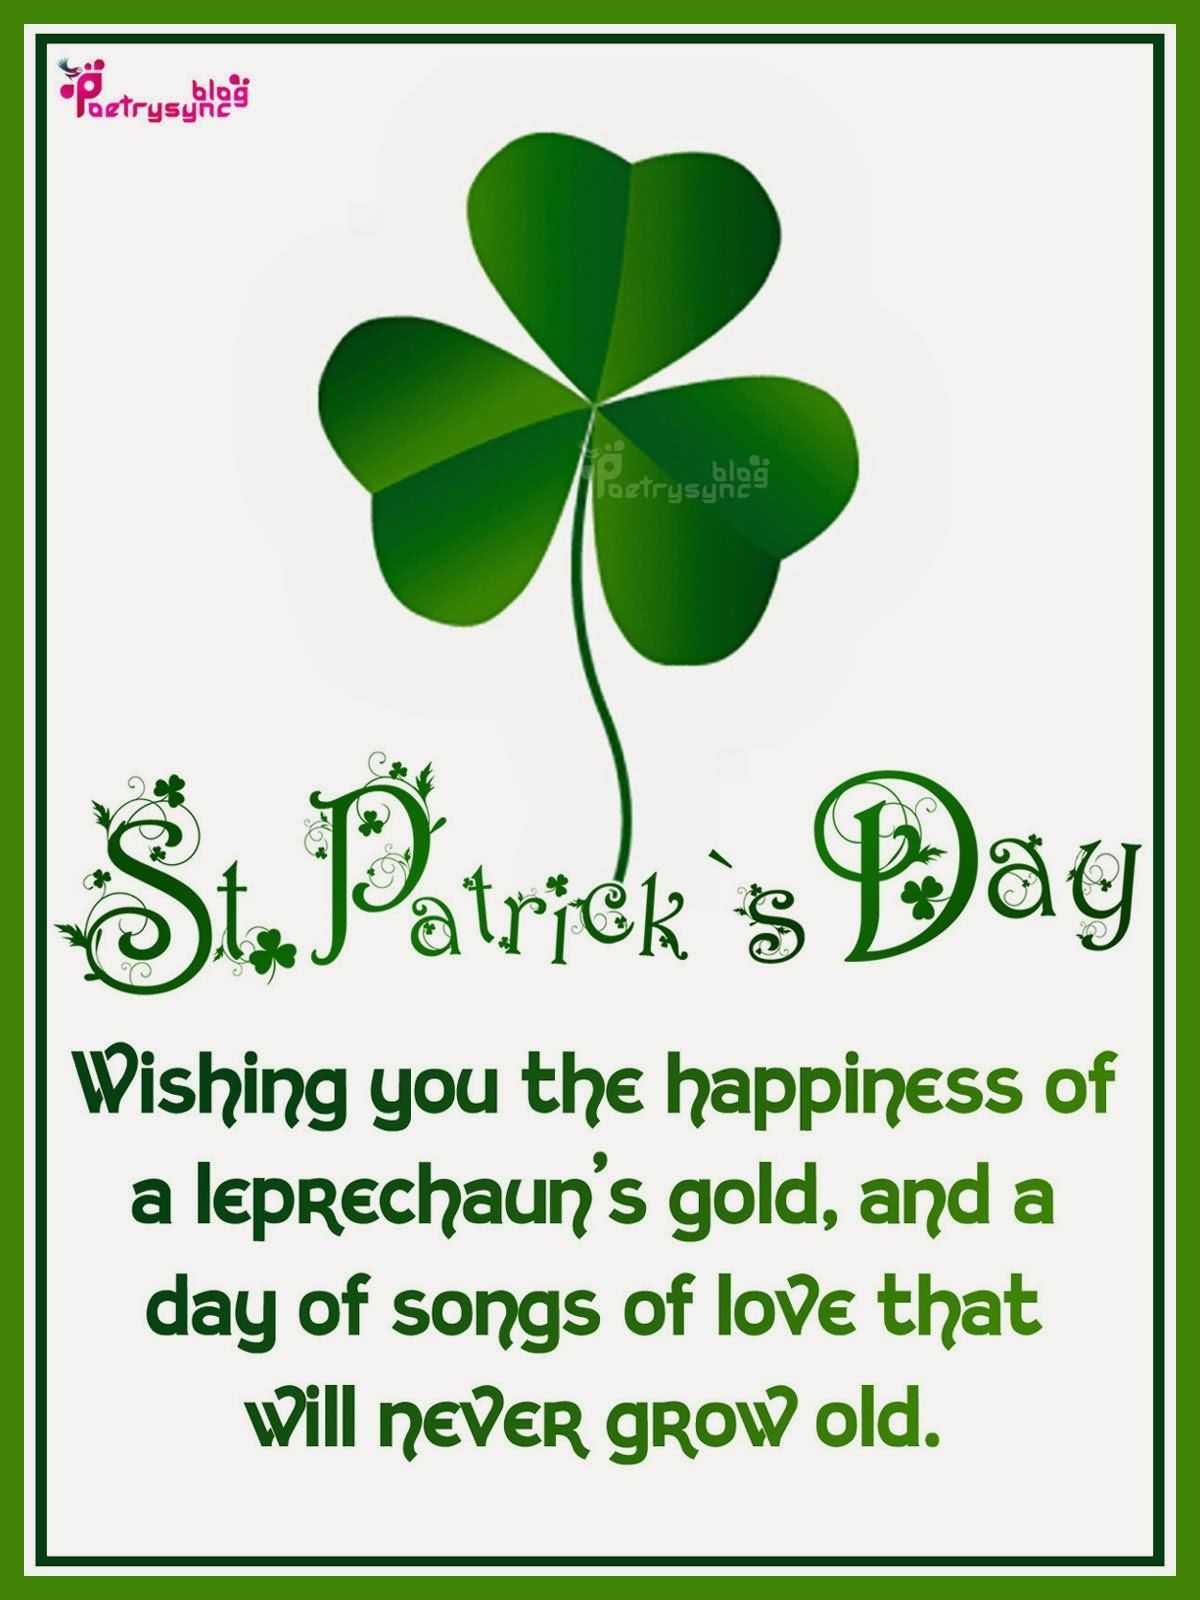 Lots of love happy saint patrick's day wishes